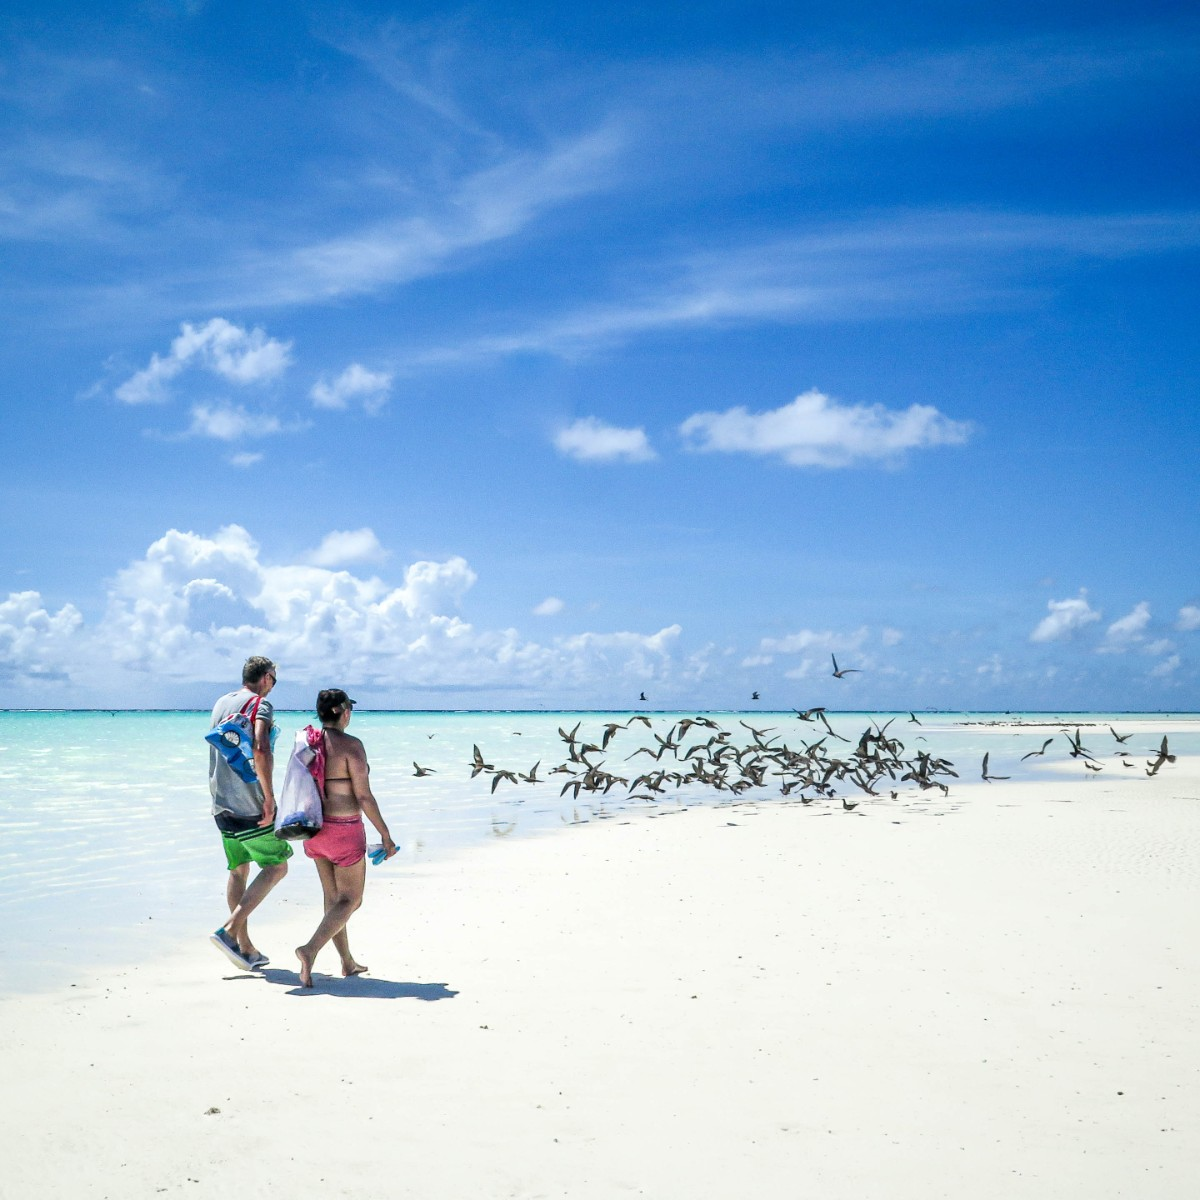 Two people walking down a white sand beach with blue skies in Tahiti - photo by Larissa Rolley, photography course creator at Wanderful